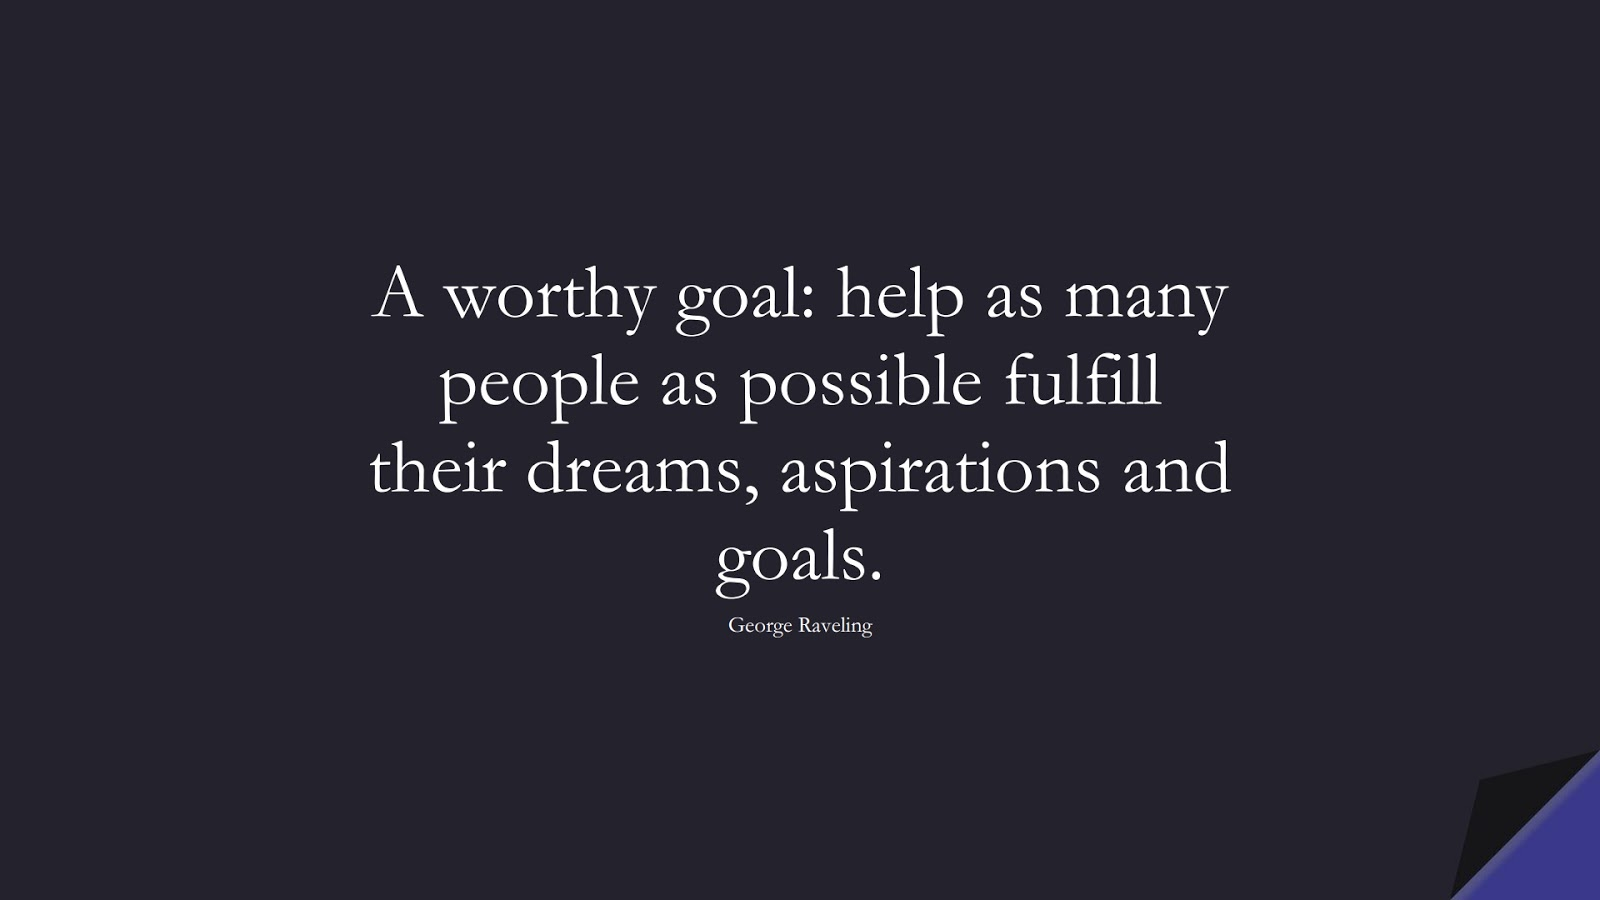 A worthy goal: help as many people as possible fulfill their dreams, aspirations and goals. (George Raveling);  #EncouragingQuotes